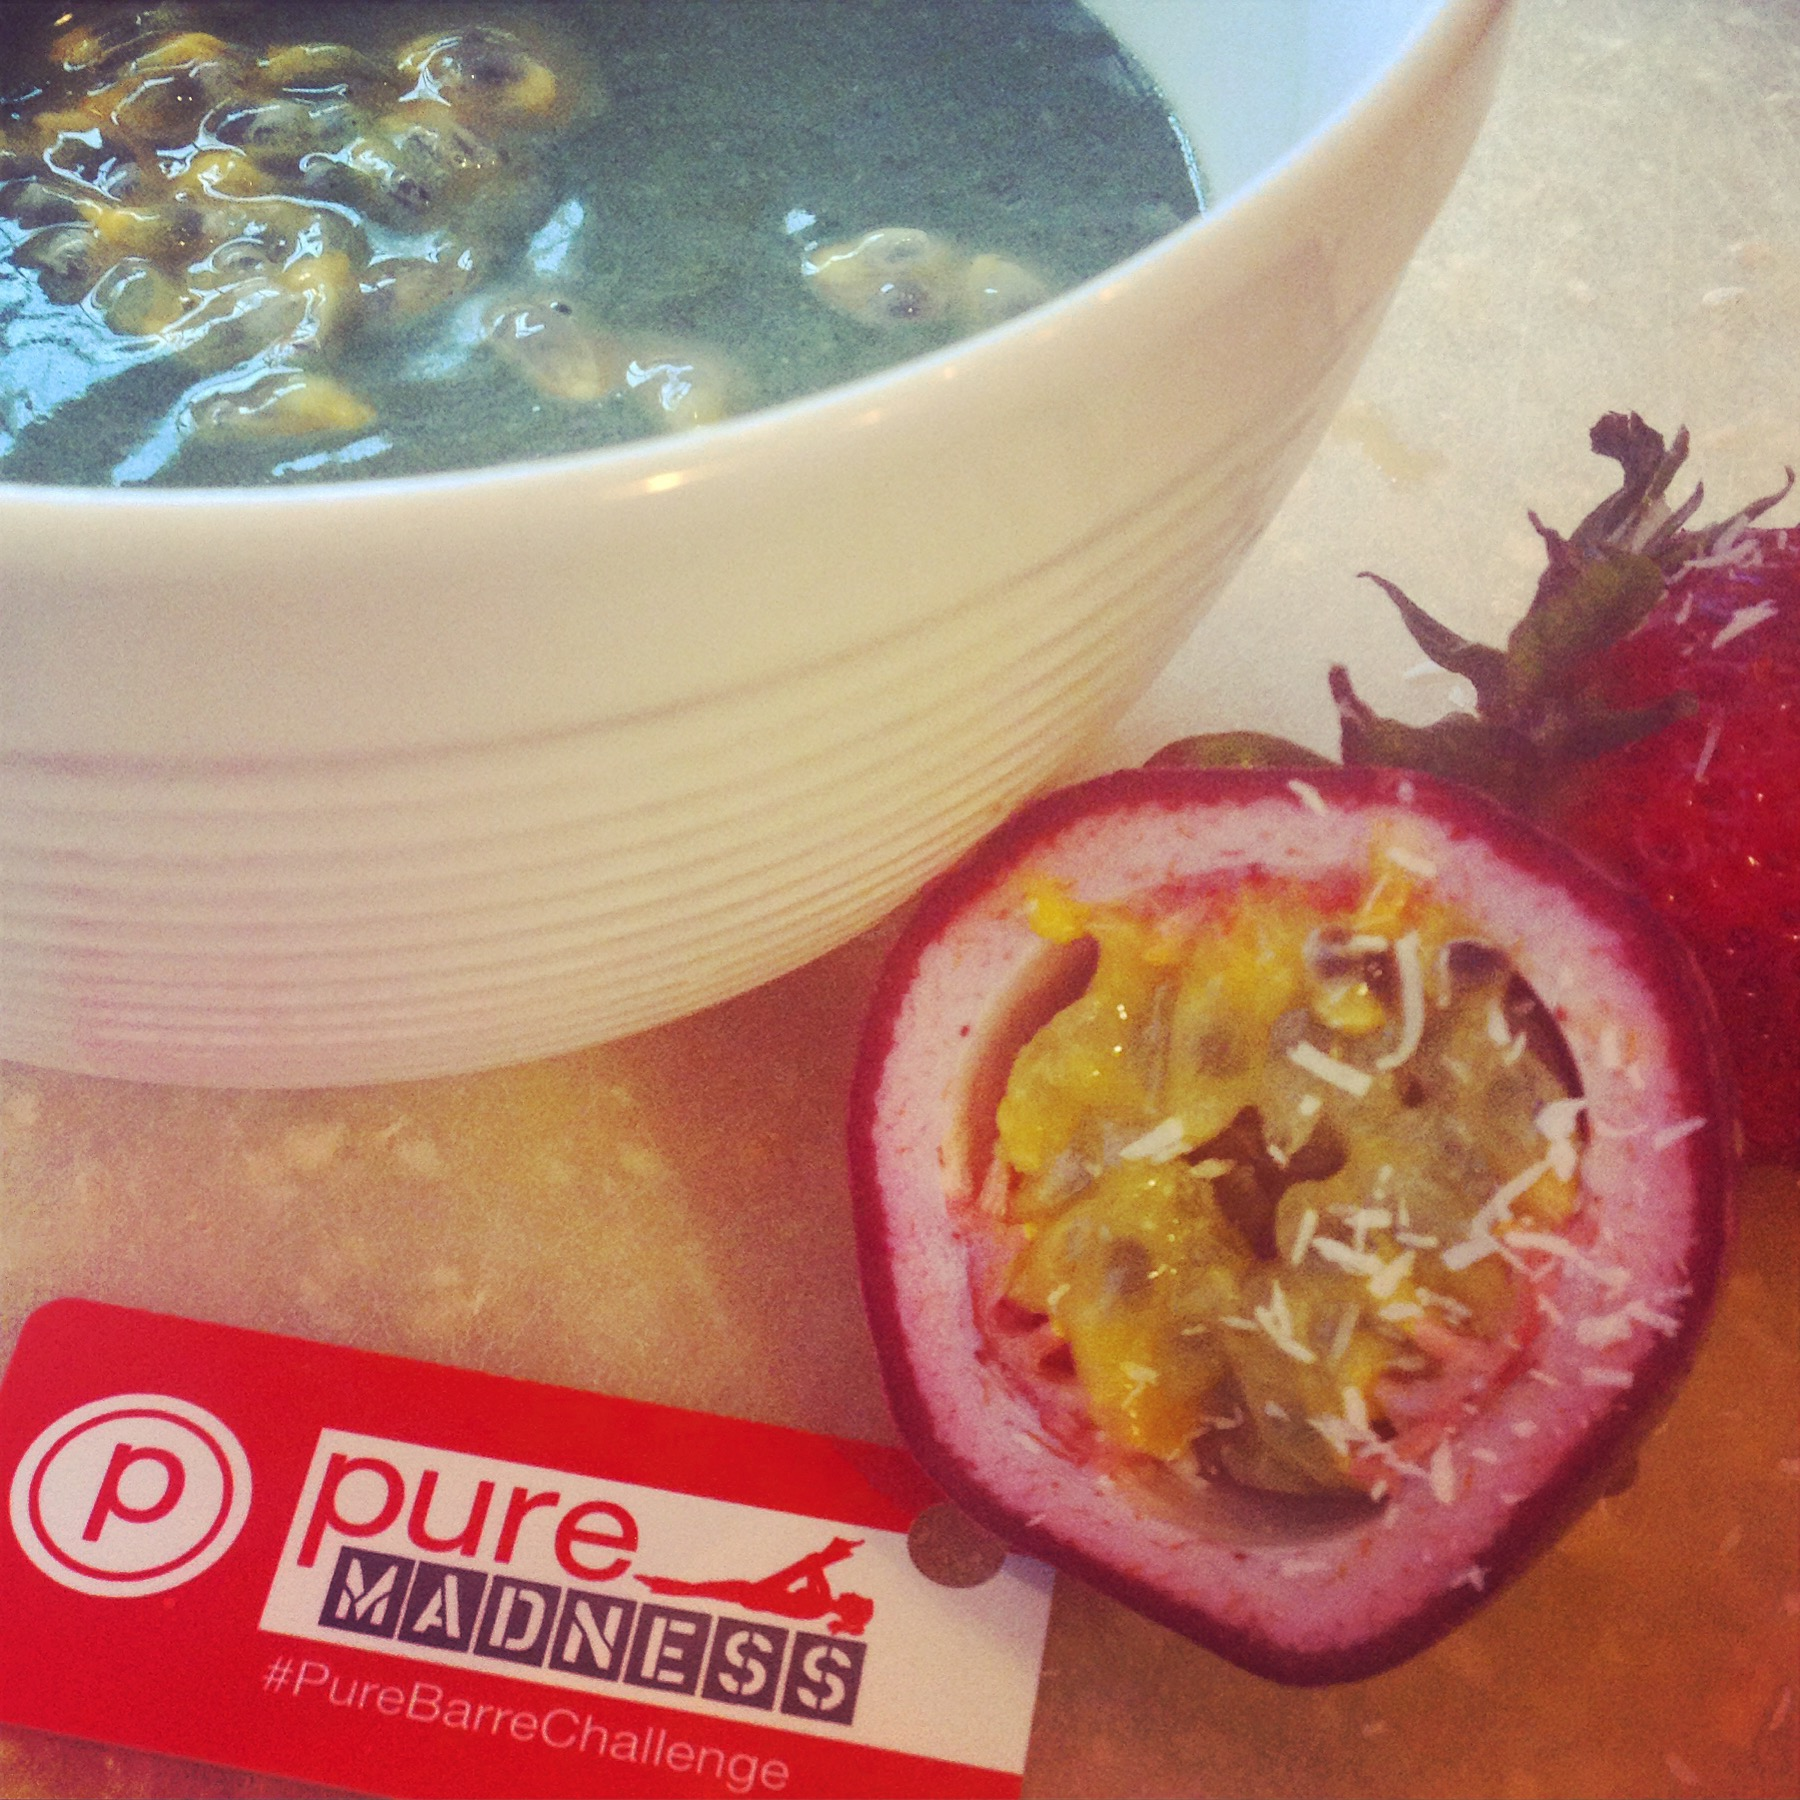 Day 1 of the Pure Madness Challenge complete. Powered by passion anda bowl of Pure Fuel.